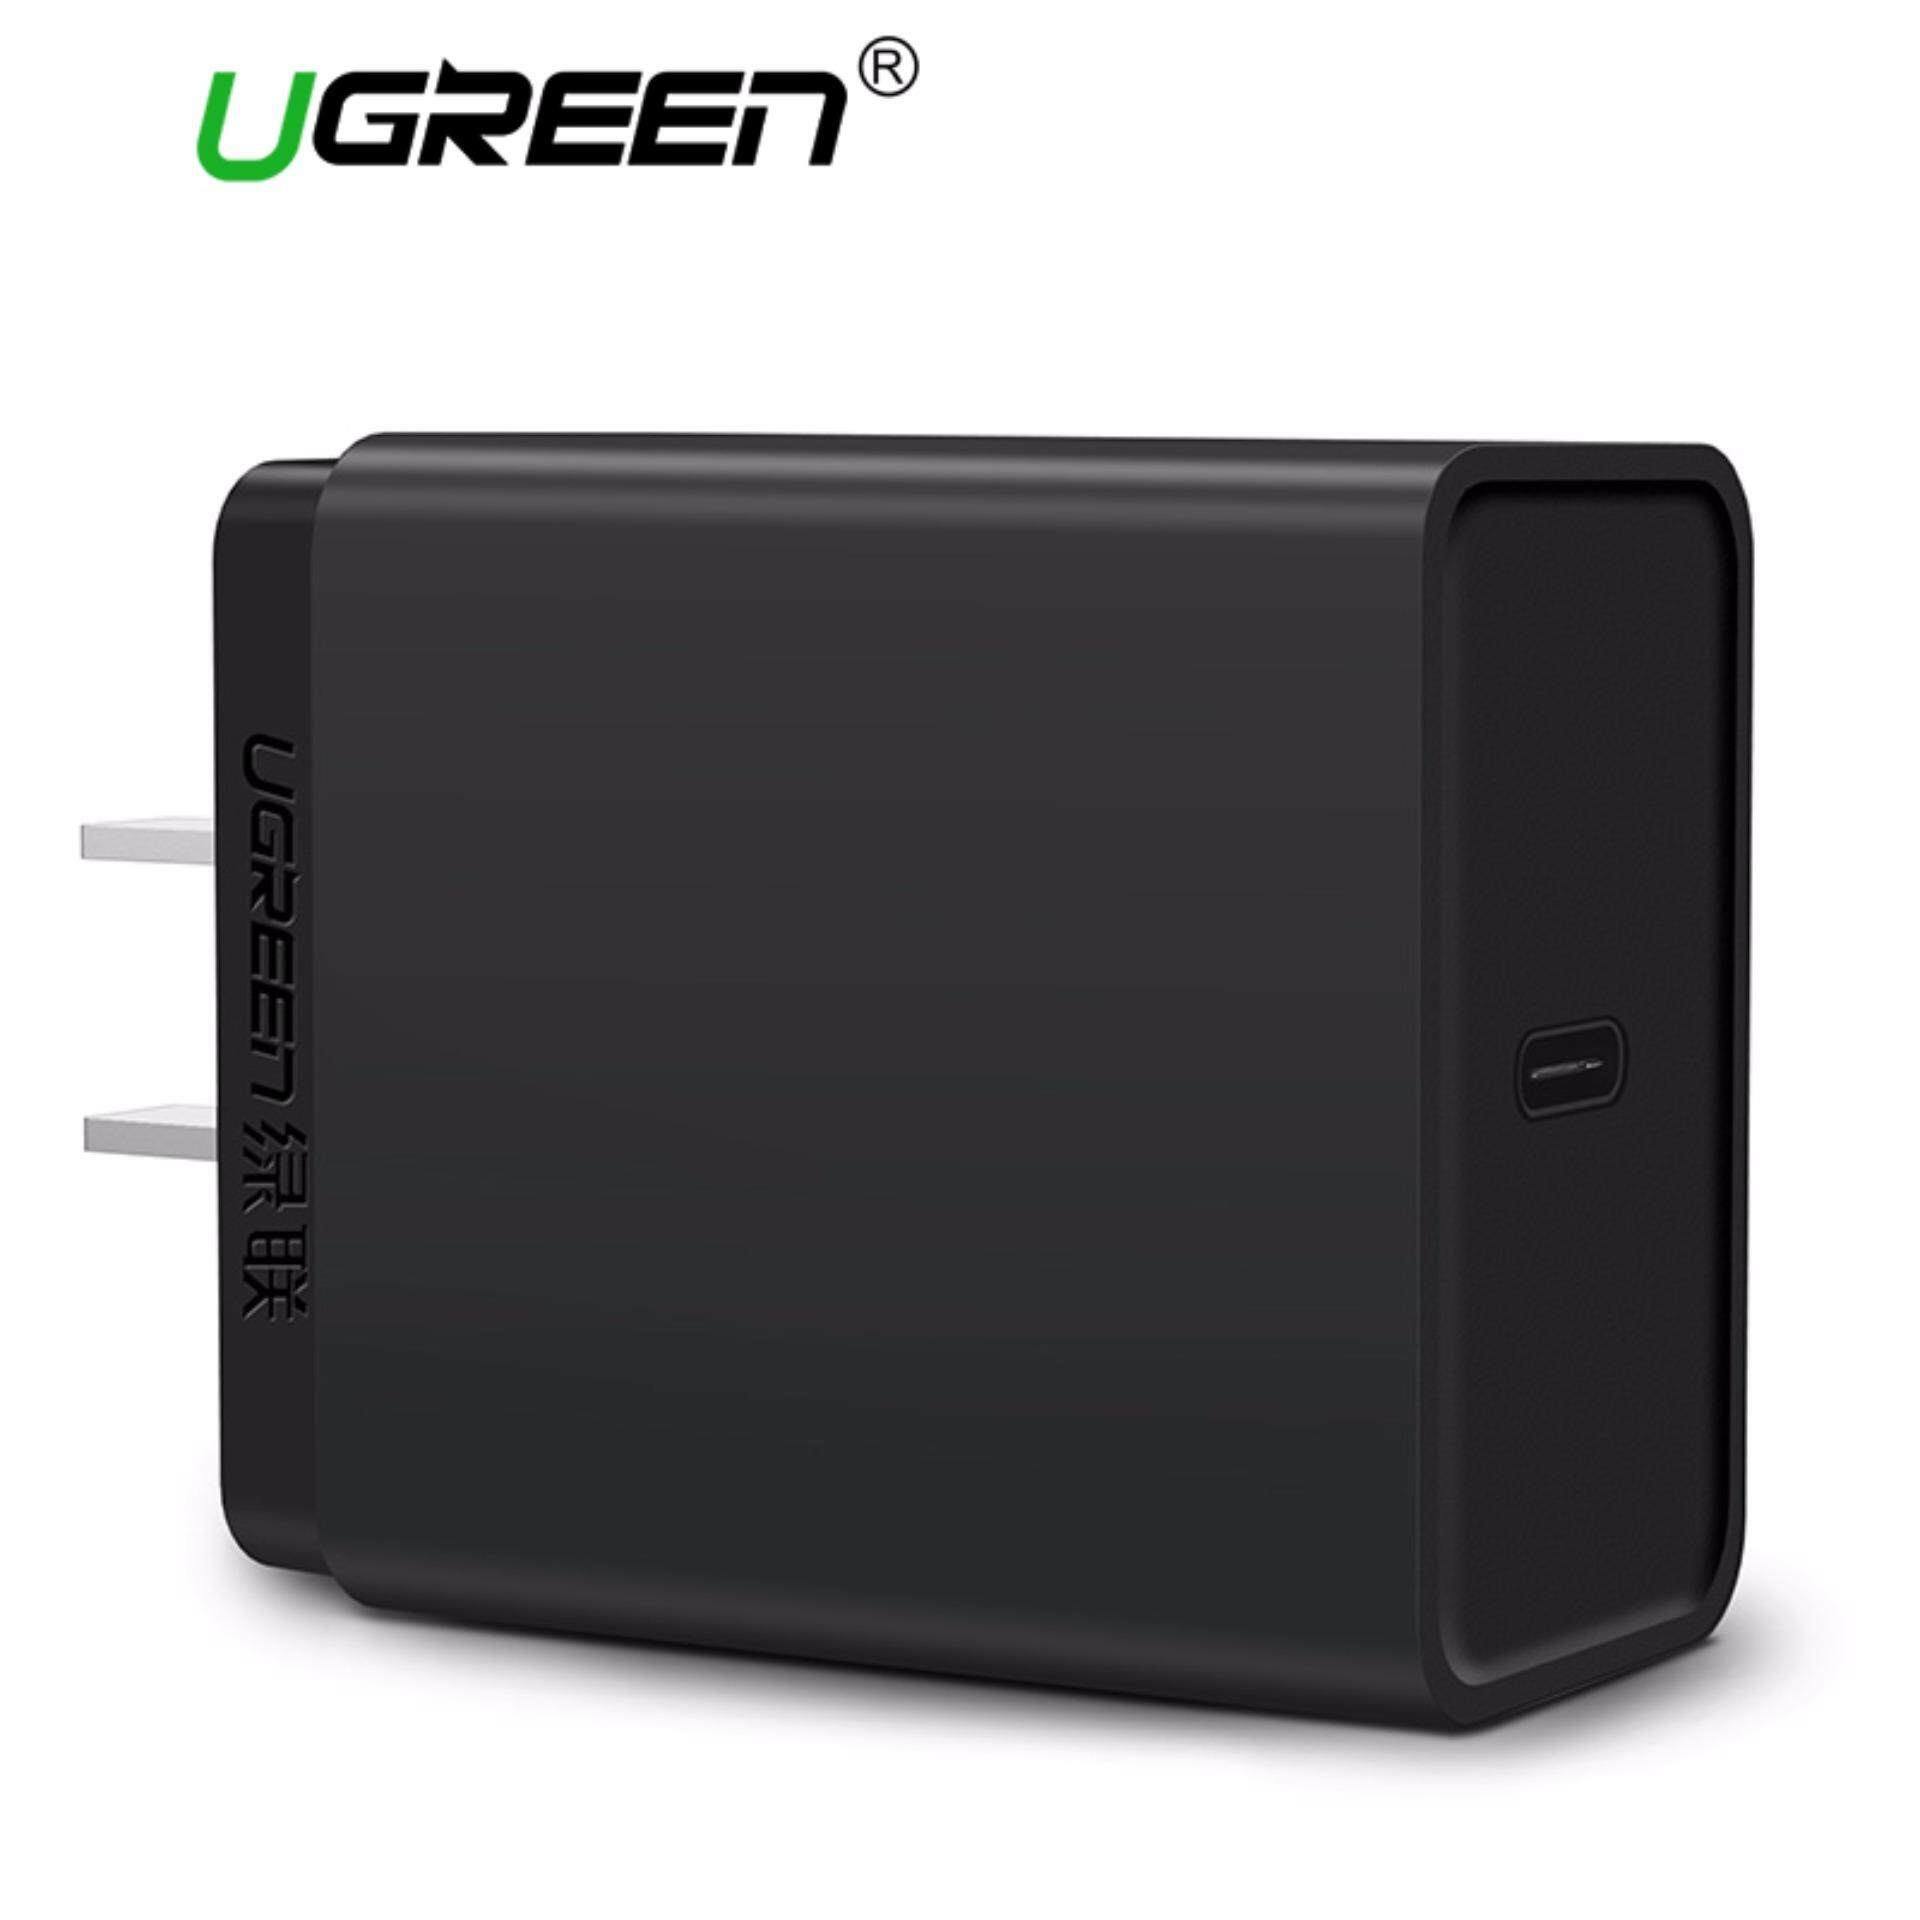 UGREEN USB Type-C 30W Wall Charger With Power Delivery for iPhone 7/ 8/X/8 plusSamsung Galaxy S8/S8 PlusMacbook Nexus 6P/5XNintendo SwitchLumia 950 XLGoogle Pixel 2 XLOnePlus 2Go Pro hero 5 US Plug